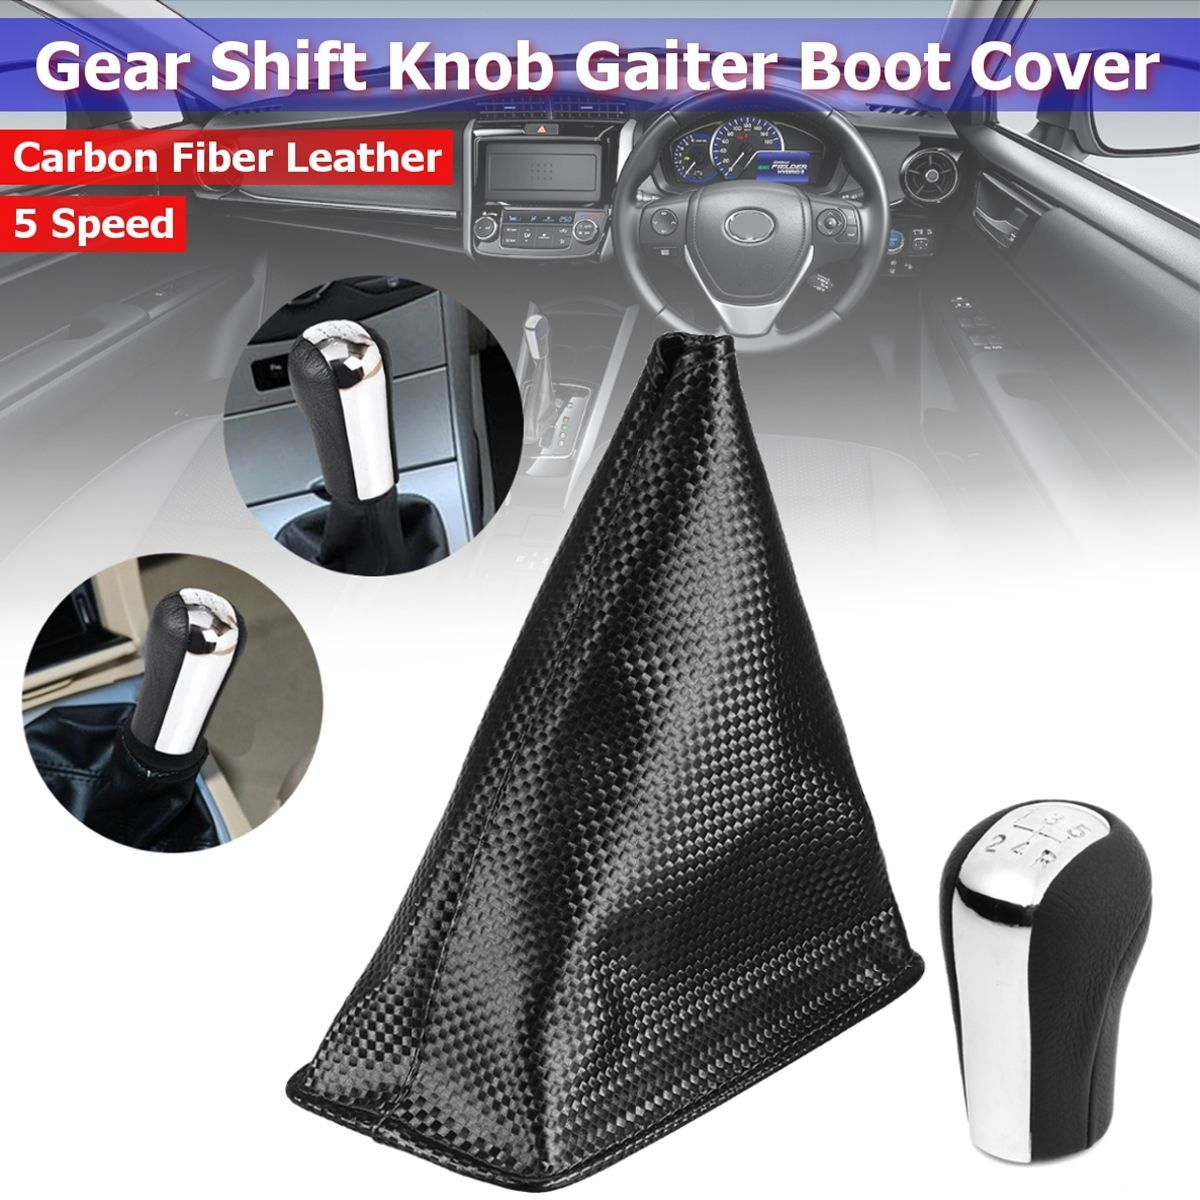 5 Speed Black Silver ABS Carbon Fiber Leather Gear Knob Gaiter Boot Cover For Toyota Corolla 2005 2006 2007 2008 2009 2004 2003